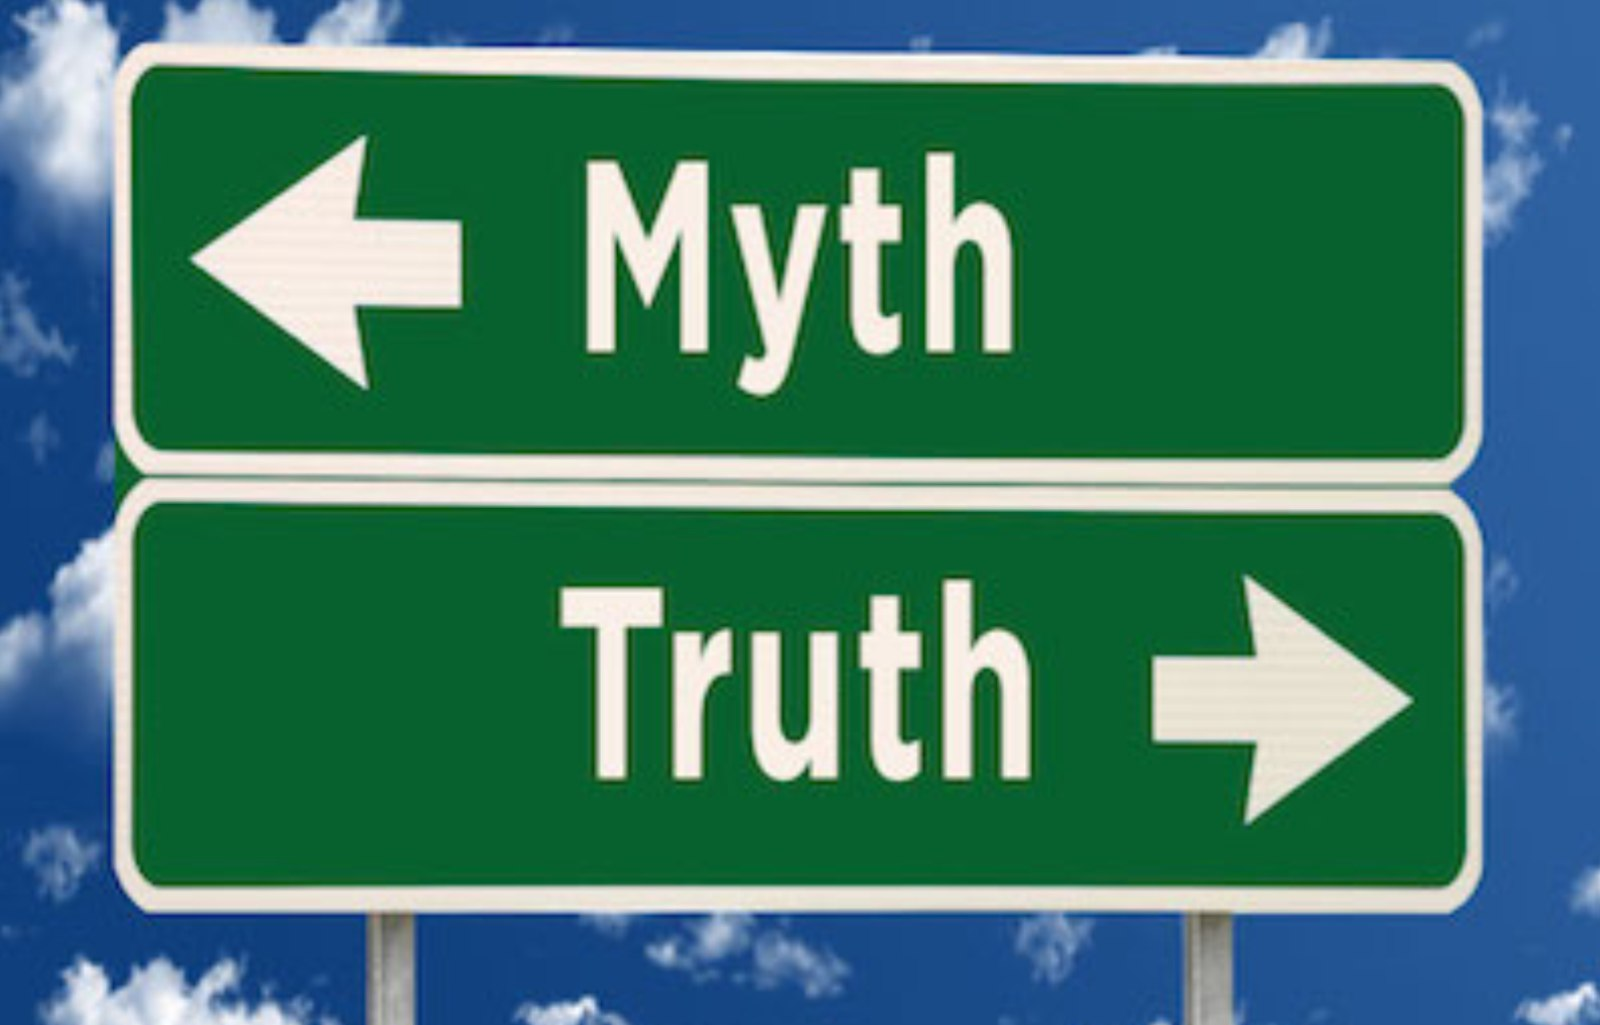 https://cdn2.hubspot.net/hubfs/2470171/blog/Myth-Truth%20Cropped.jpg Feature Image